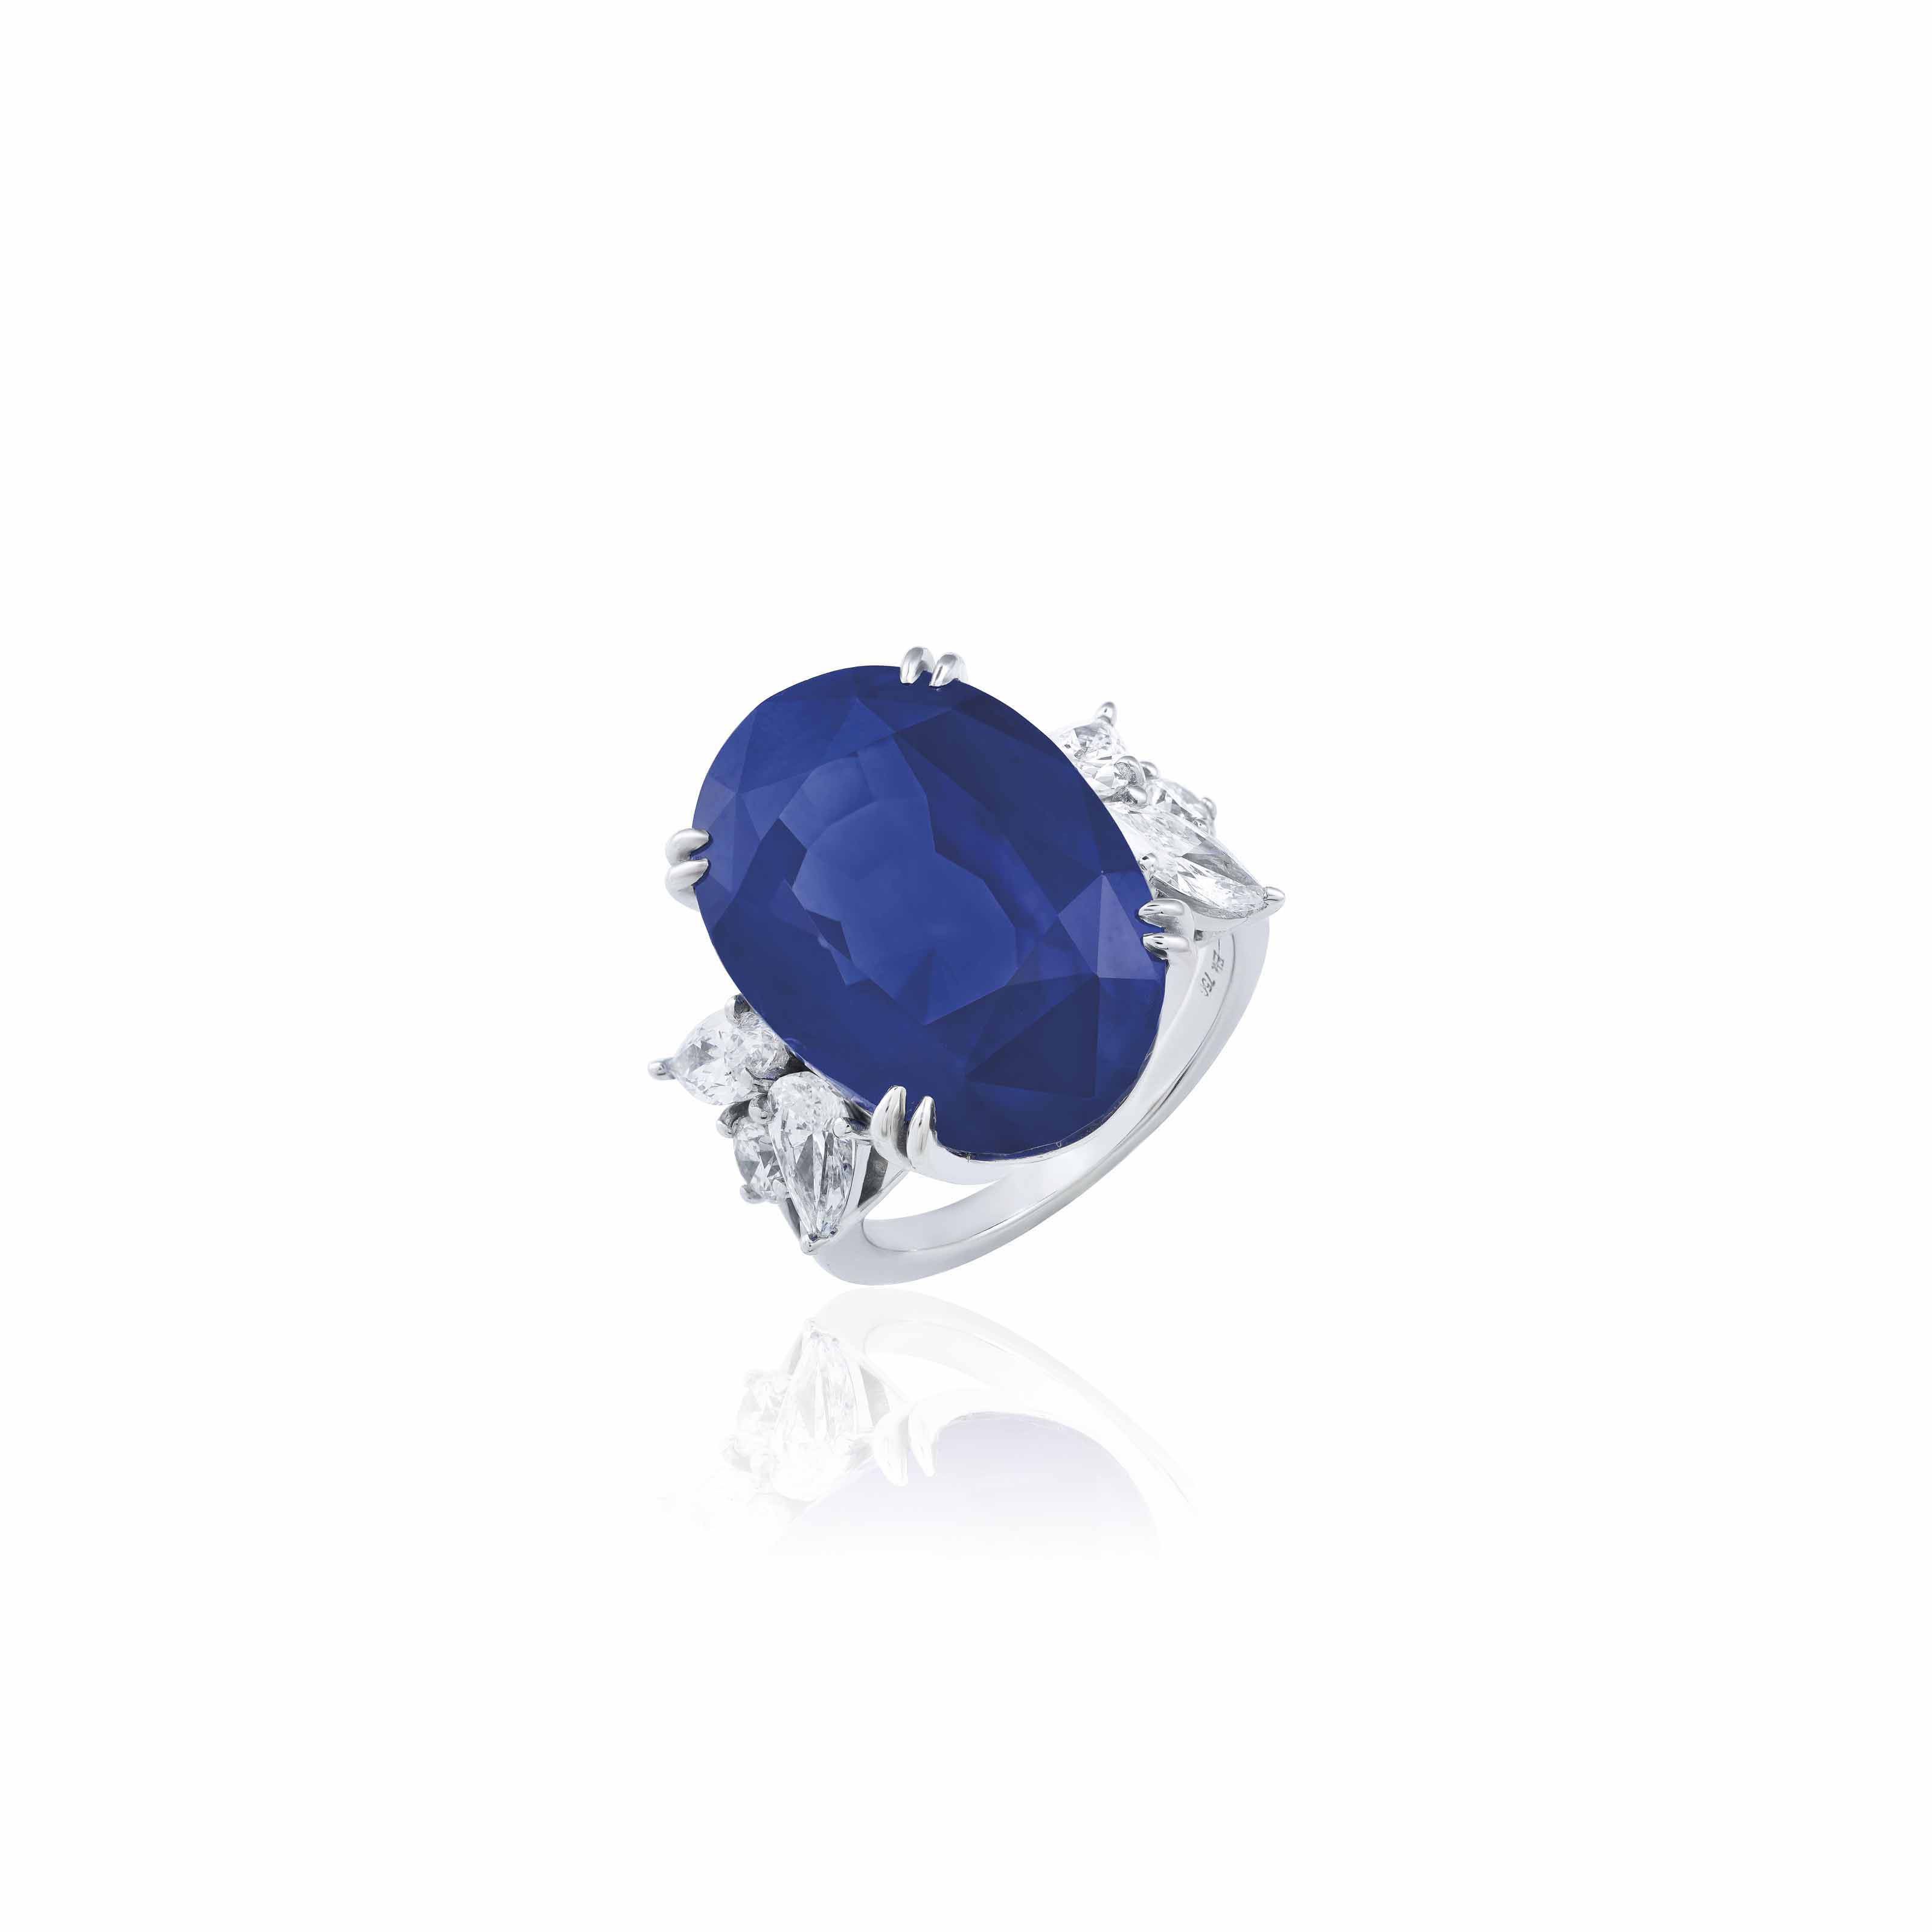 SAPPHIRE AND DIAMOND RING, MEISTER